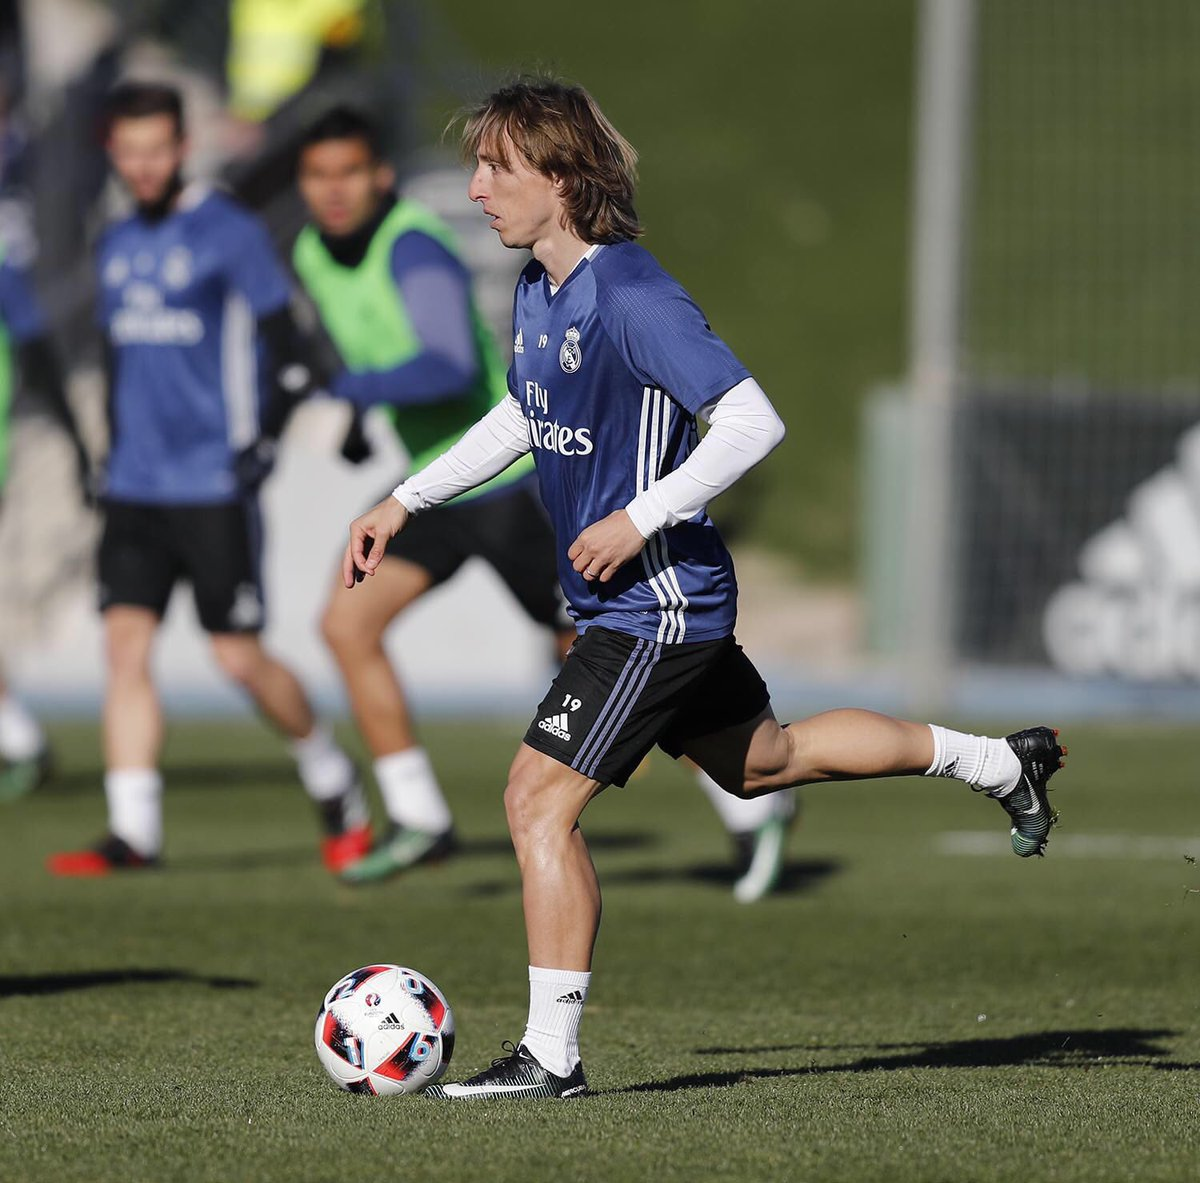 Finished training for today #RMCity